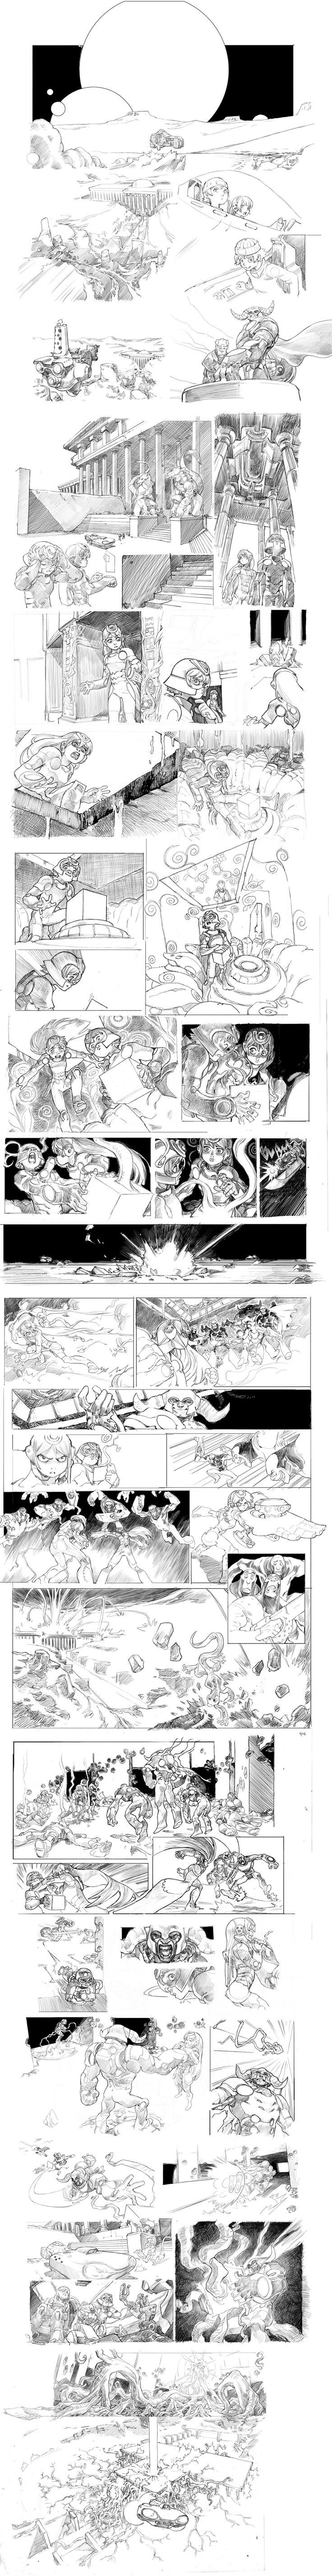 Best Storyboard Comic Strips Story Layout Images On